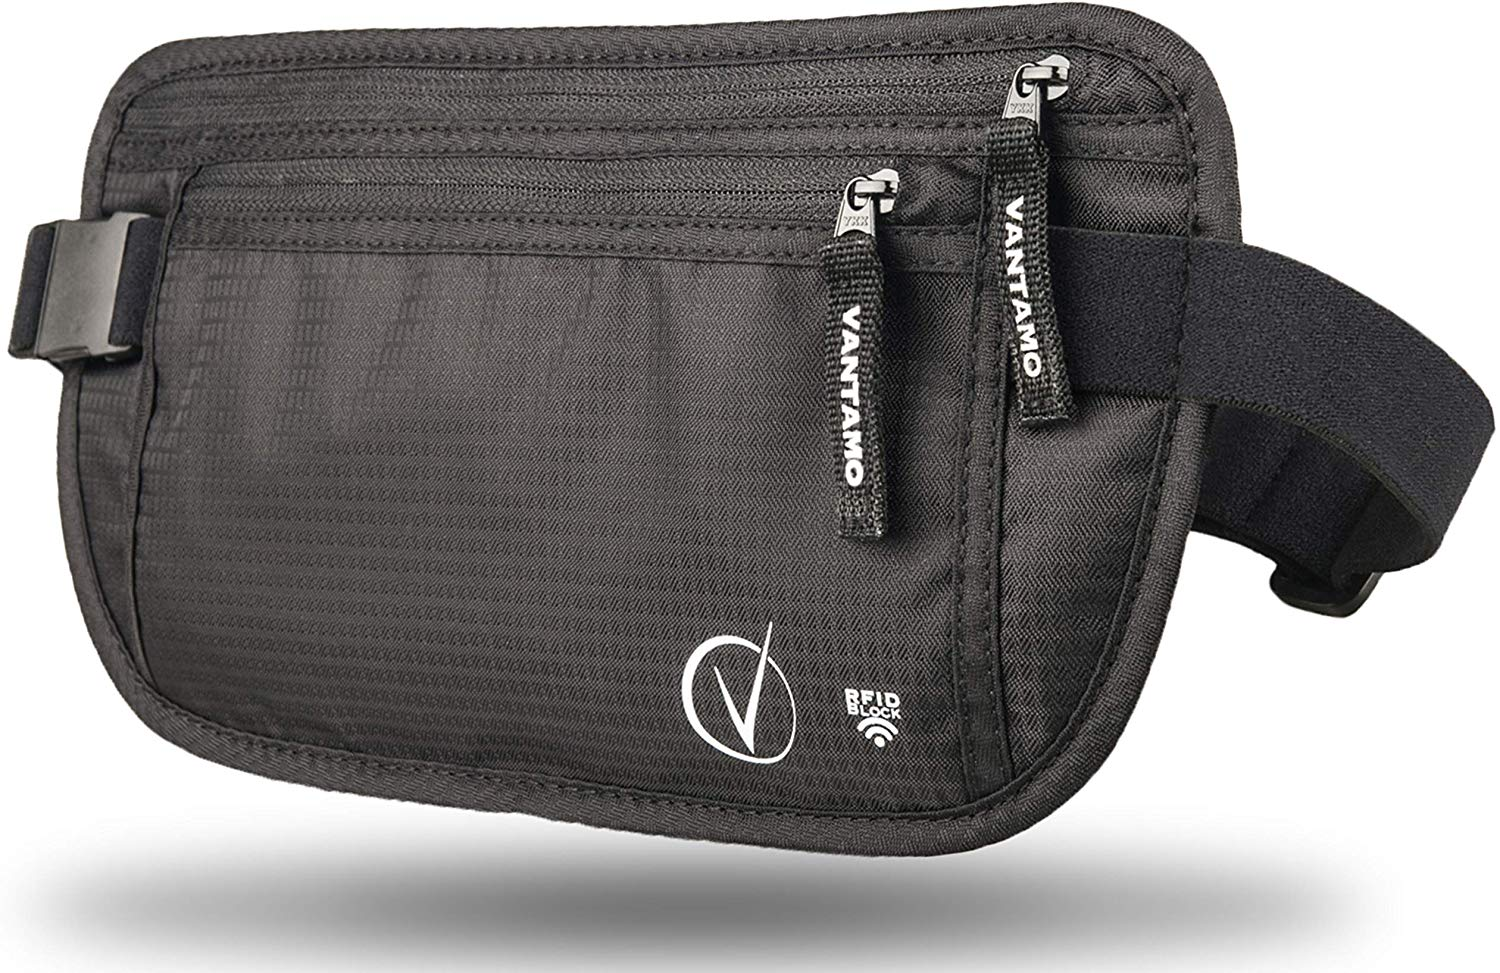 Money Belt For Travel Hidden, RFID Protected Waist Wallet, Fits Passport with cover, Includes 2 Global Recovery Tags